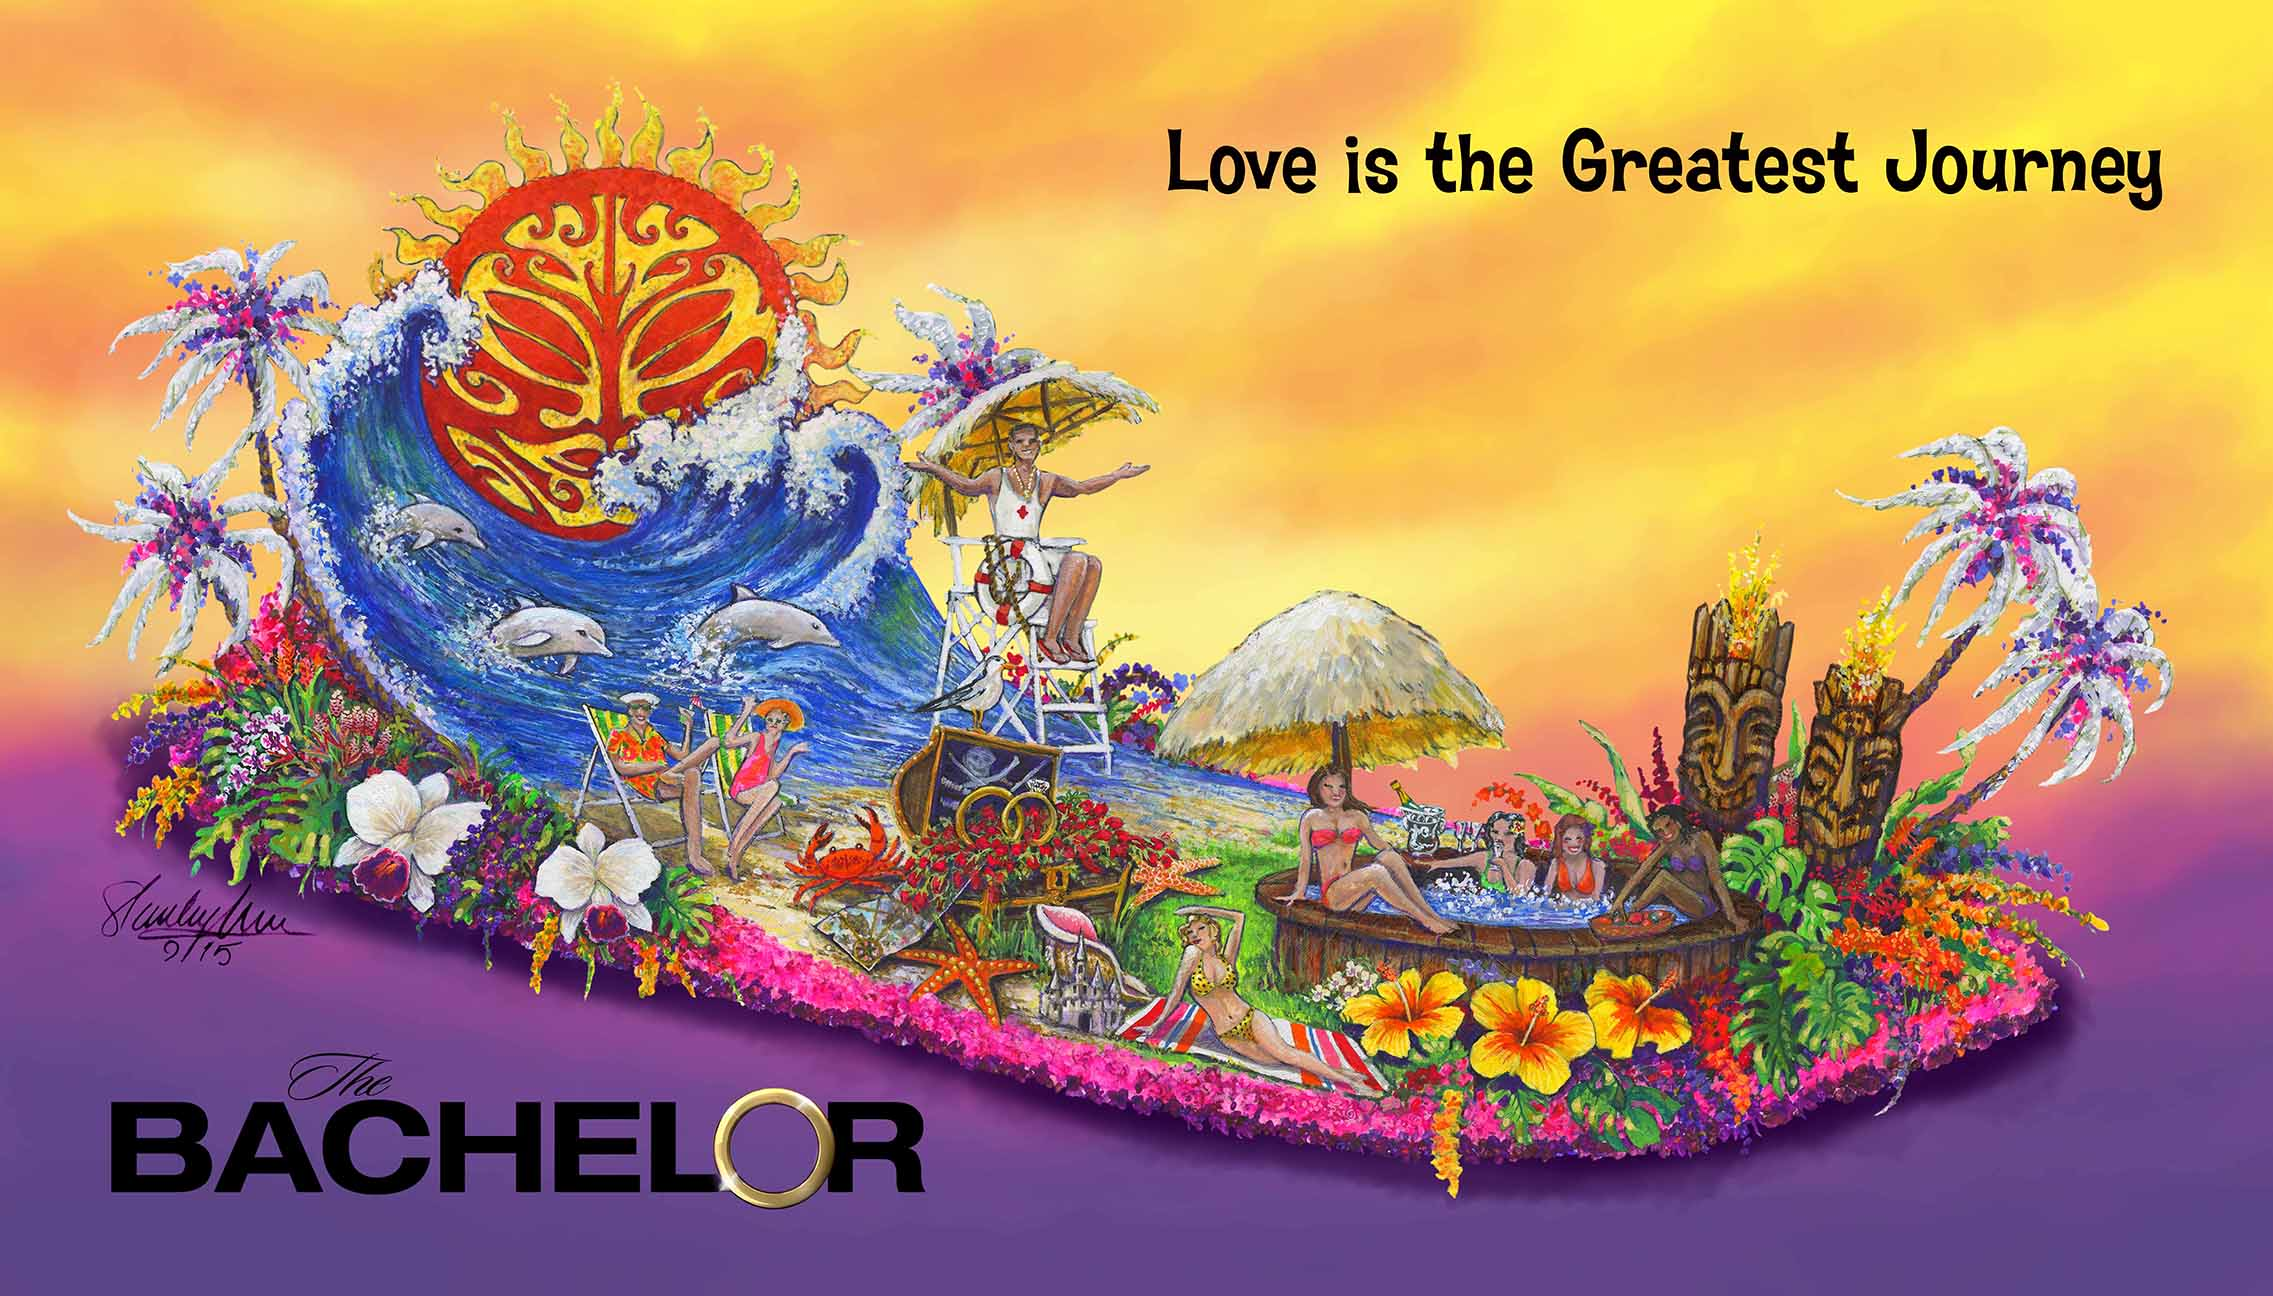 The Bachelor 2016 Color Rendering